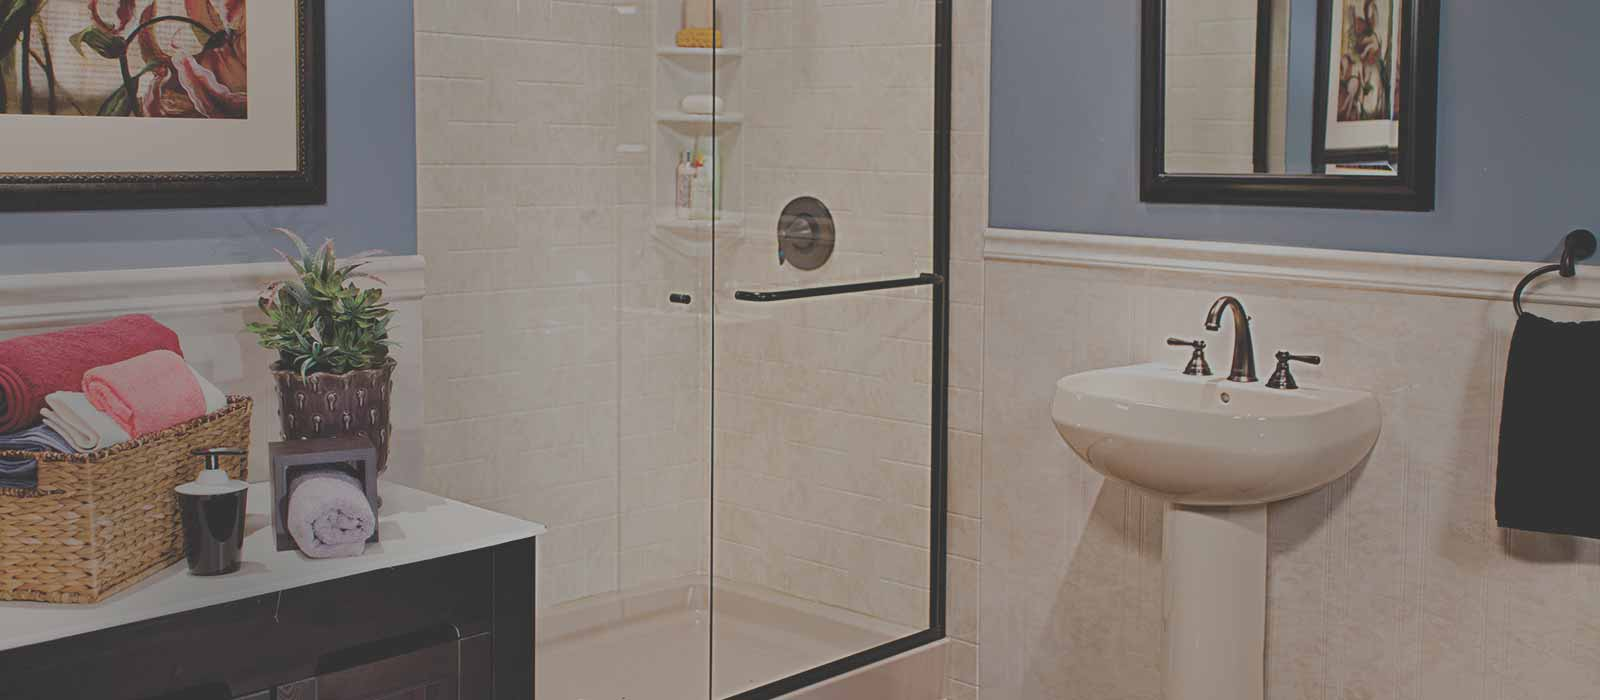 acrylic bathroom systems Springfield Missouri